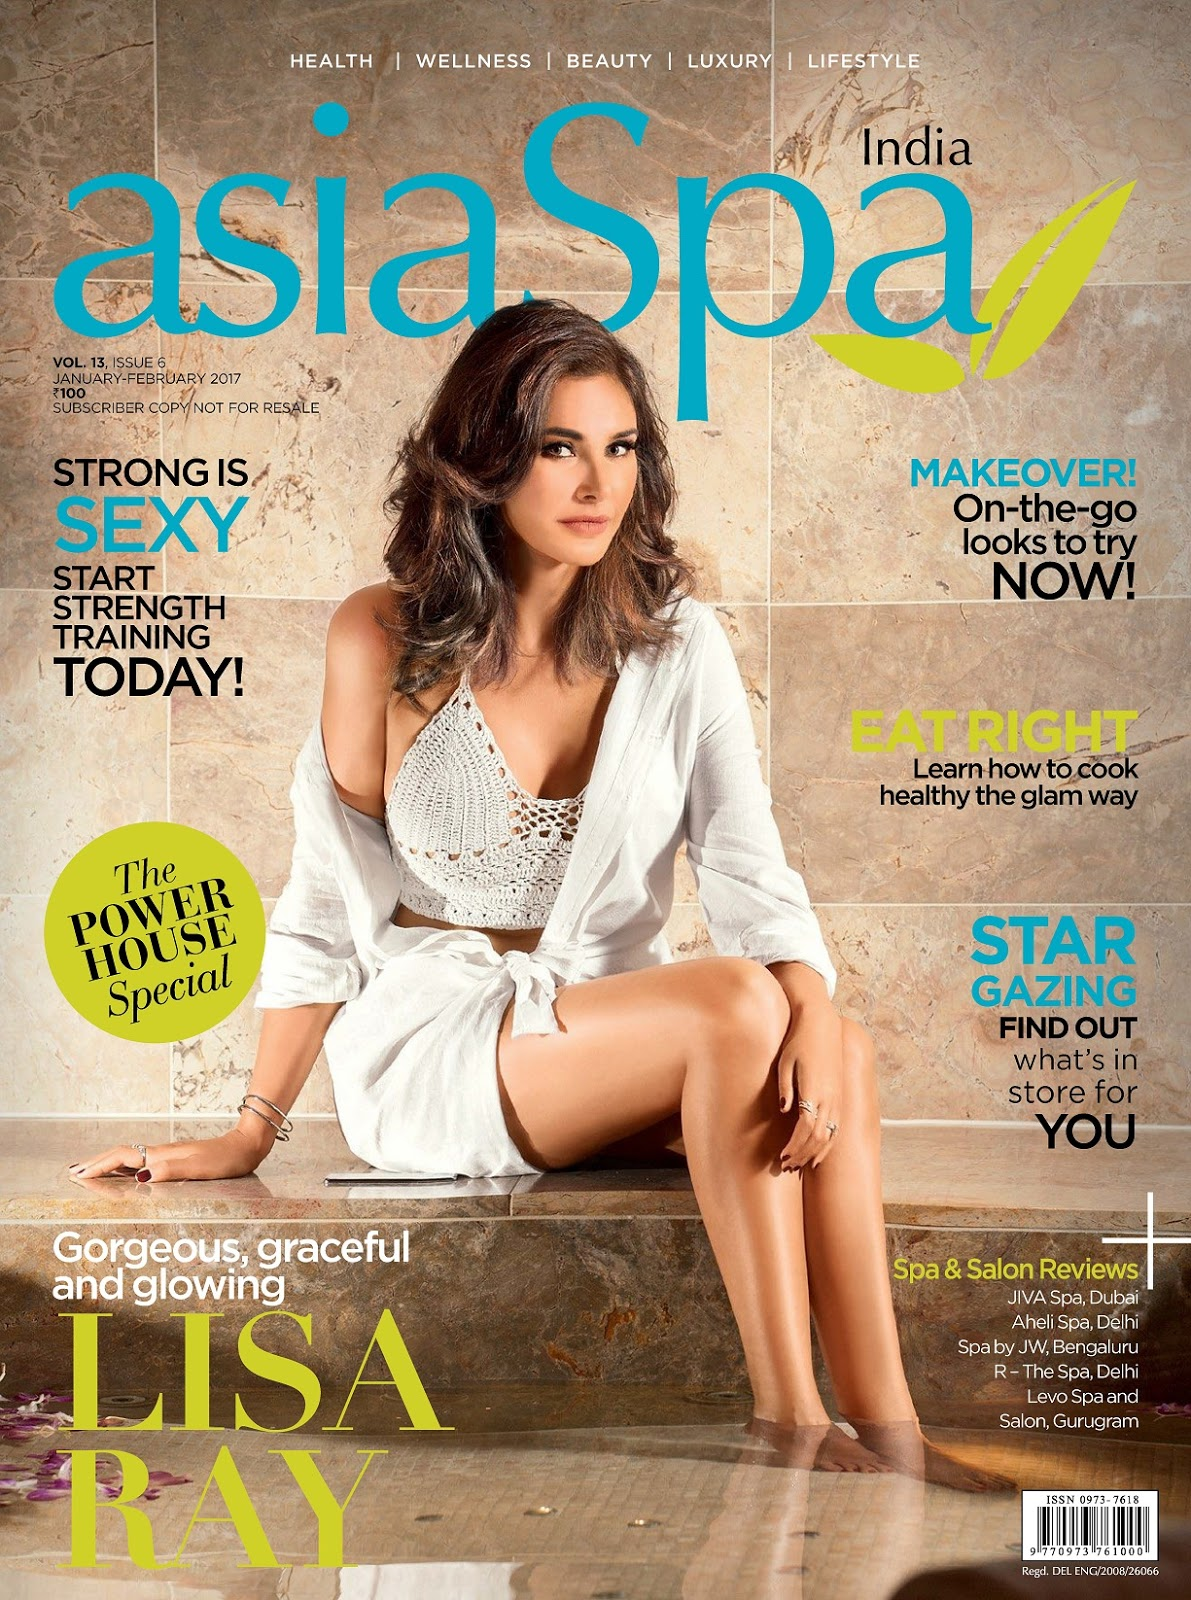 Lisa Ray Looks cute Stunning for Asia Spa India Magazine Jan February 2017 Issue